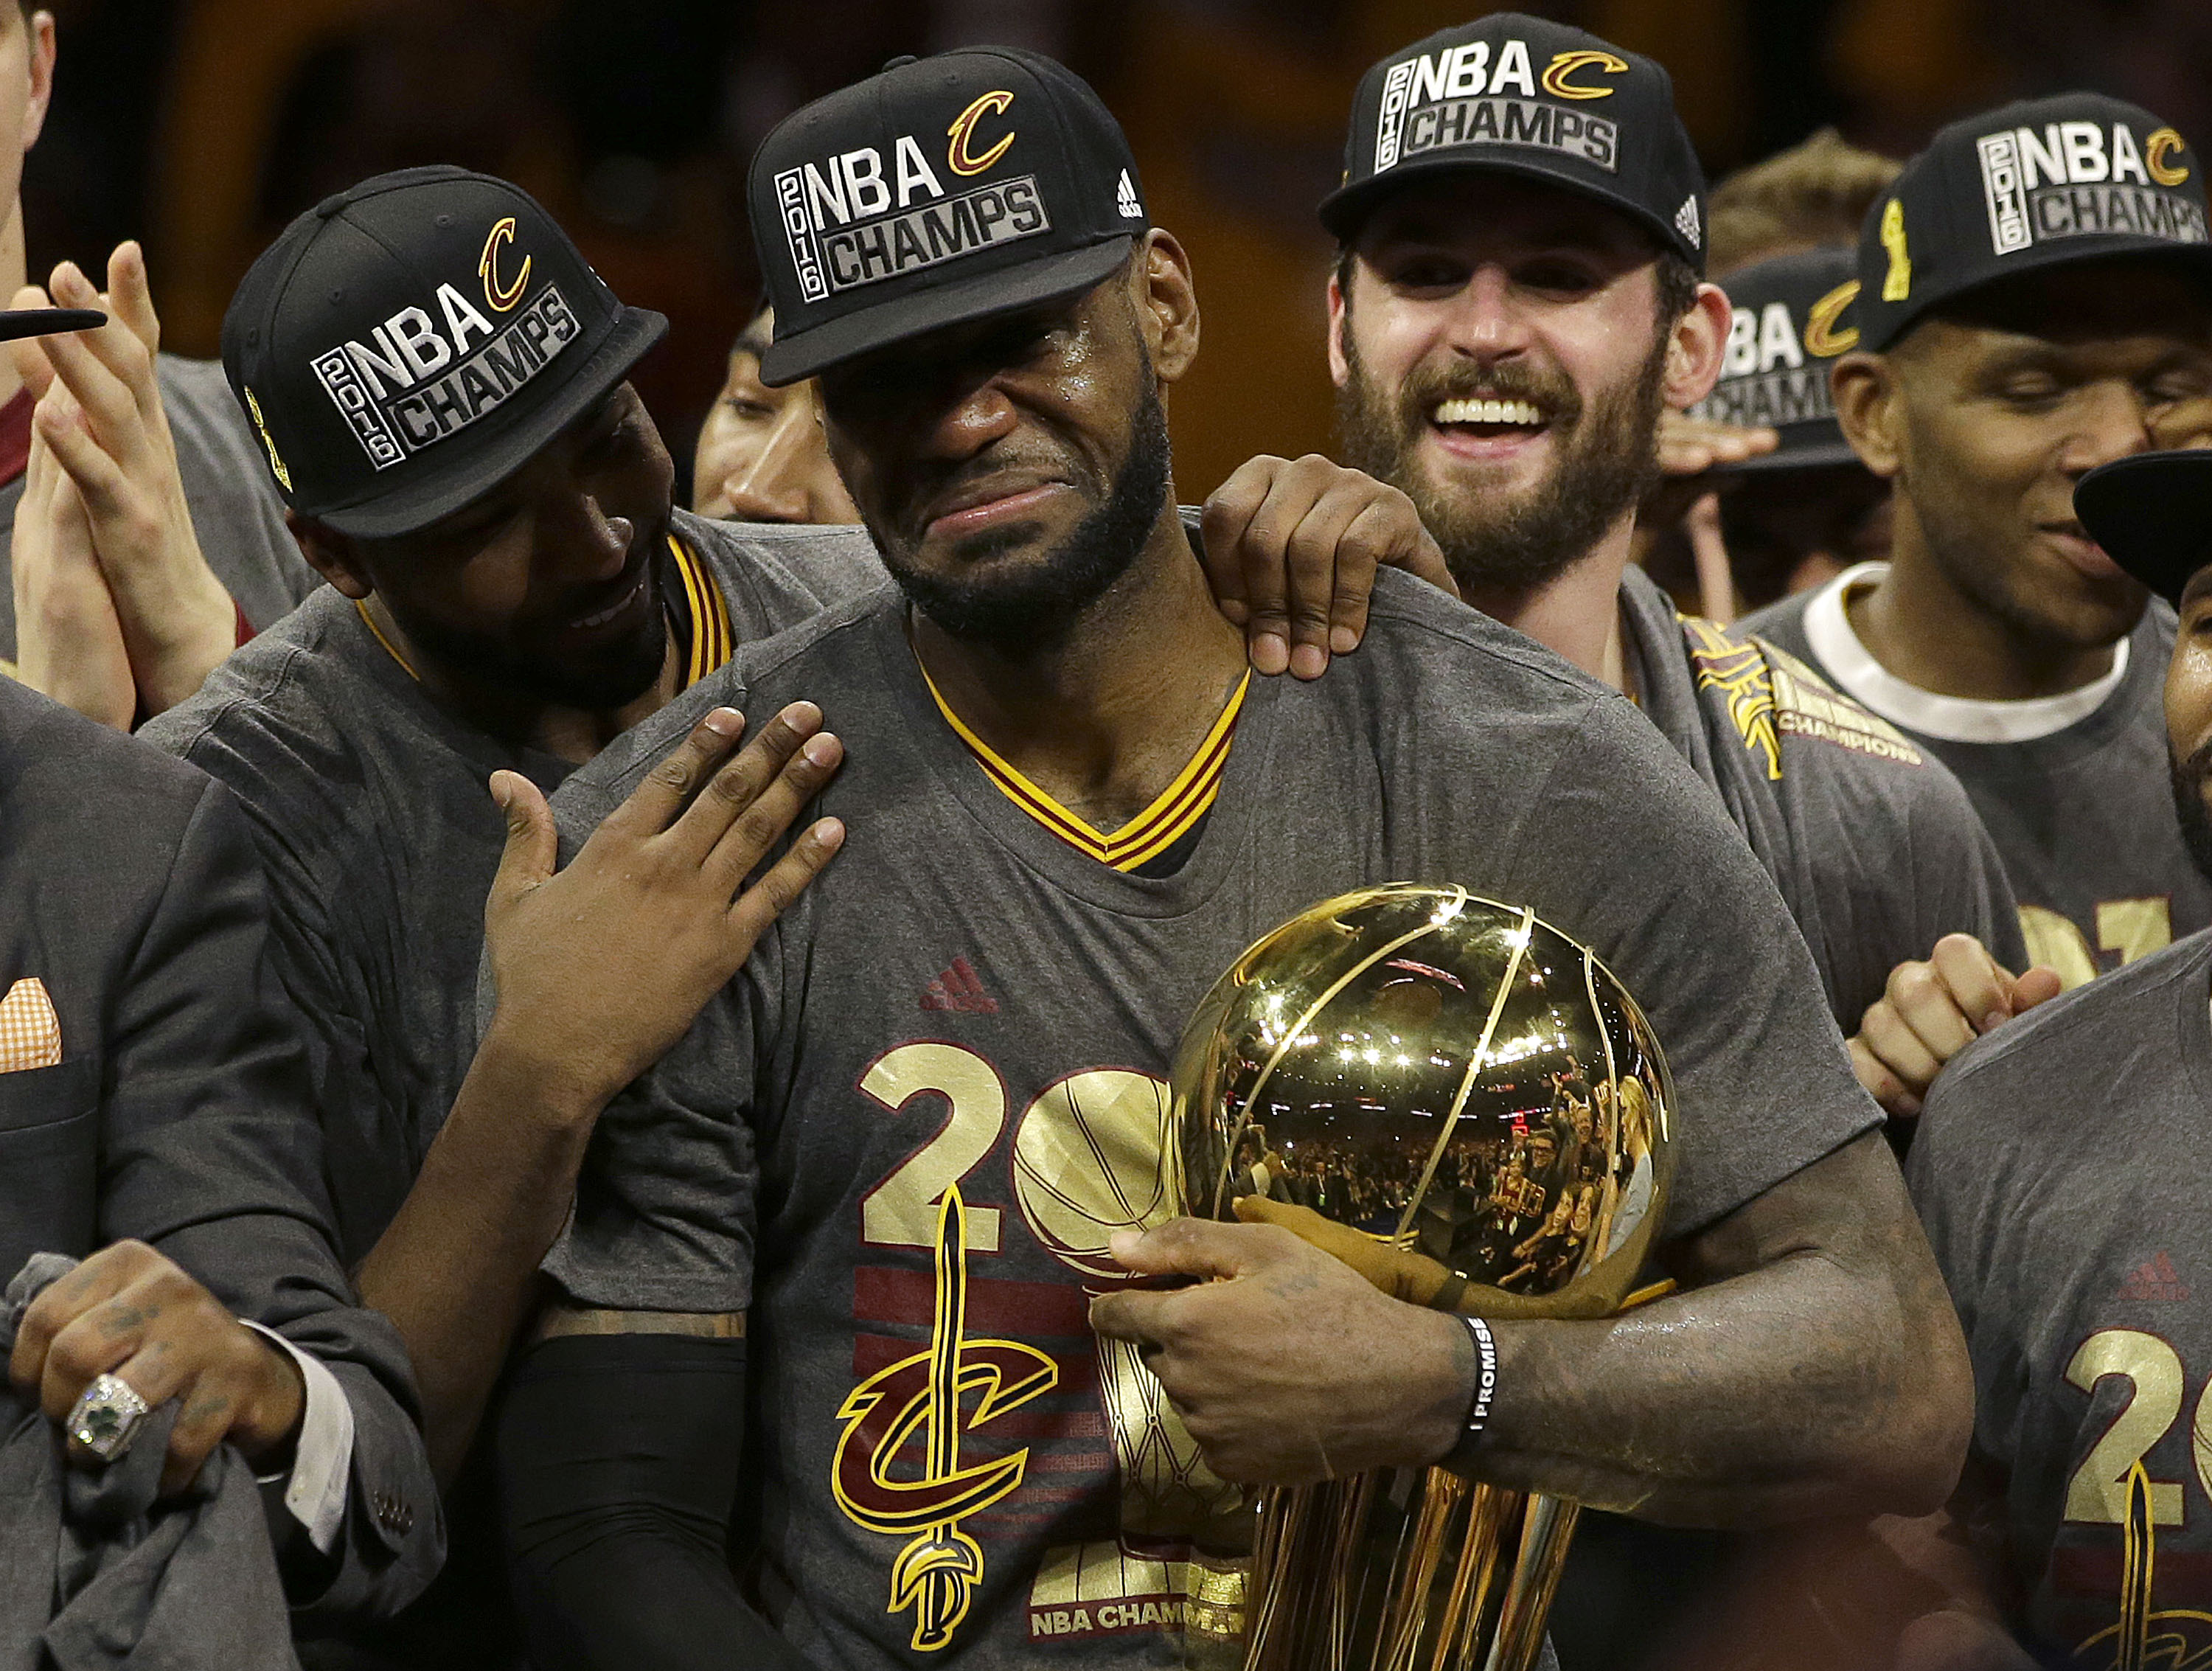 Cleveland Cavaliers forward LeBron James, center, celebrates with teammates after Game 7 of basketball's NBA Finals against the Golden State Warriors in Oakland, Calif., Sunday, June 19, 2016. The Cavaliers won 93-89. (AP Photo/Marcio Jose Sanchez)